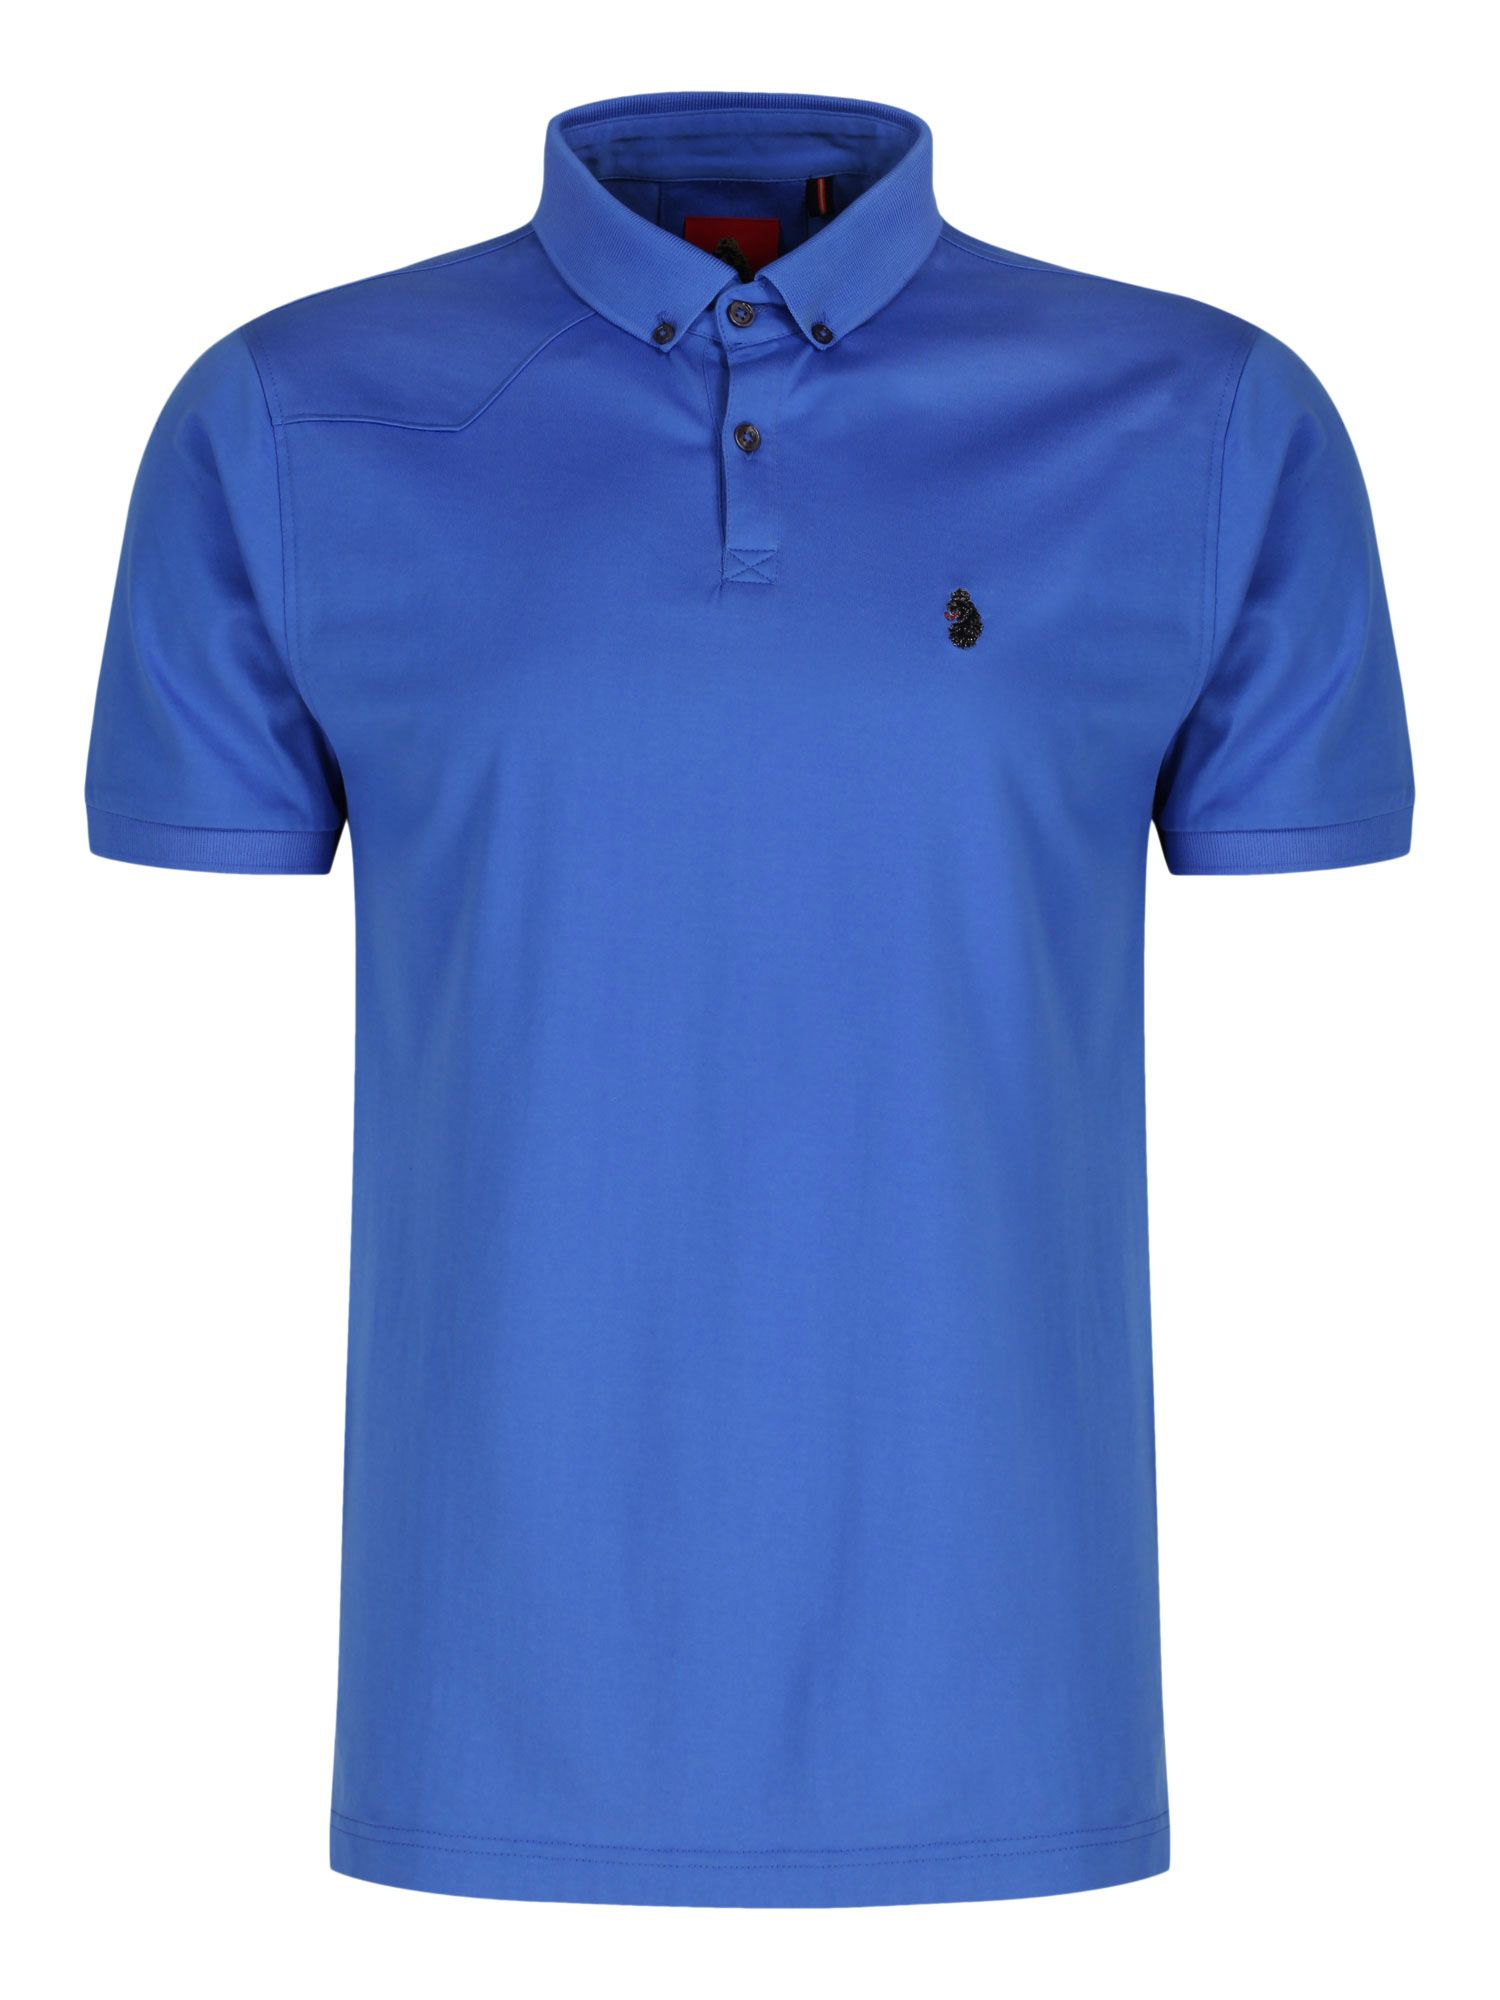 Men's Luke 1977 Stan Poole Small Lion Polo, Blue